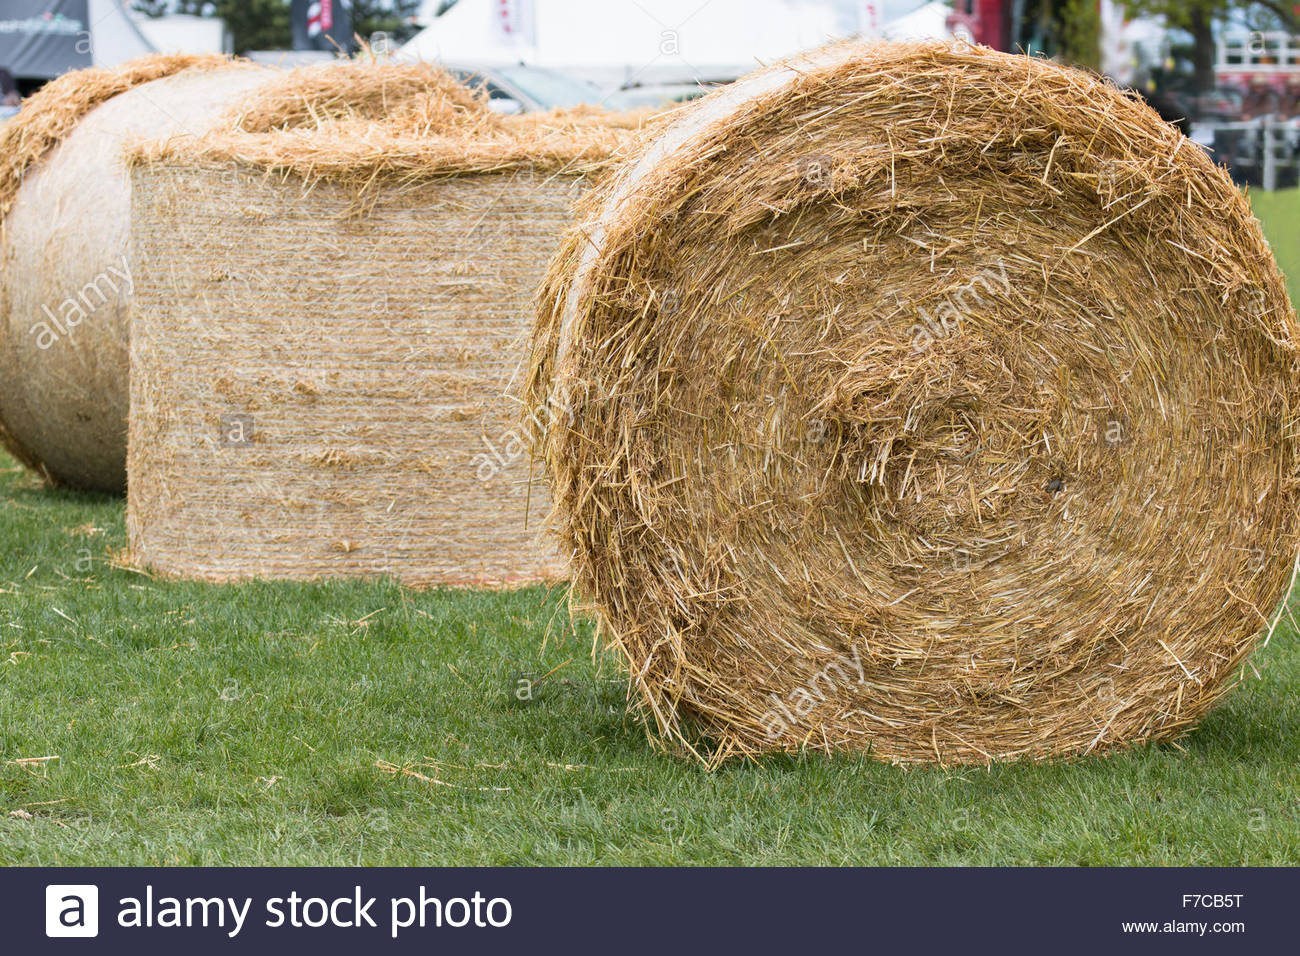 Three hay bales on the grass - Stock Image